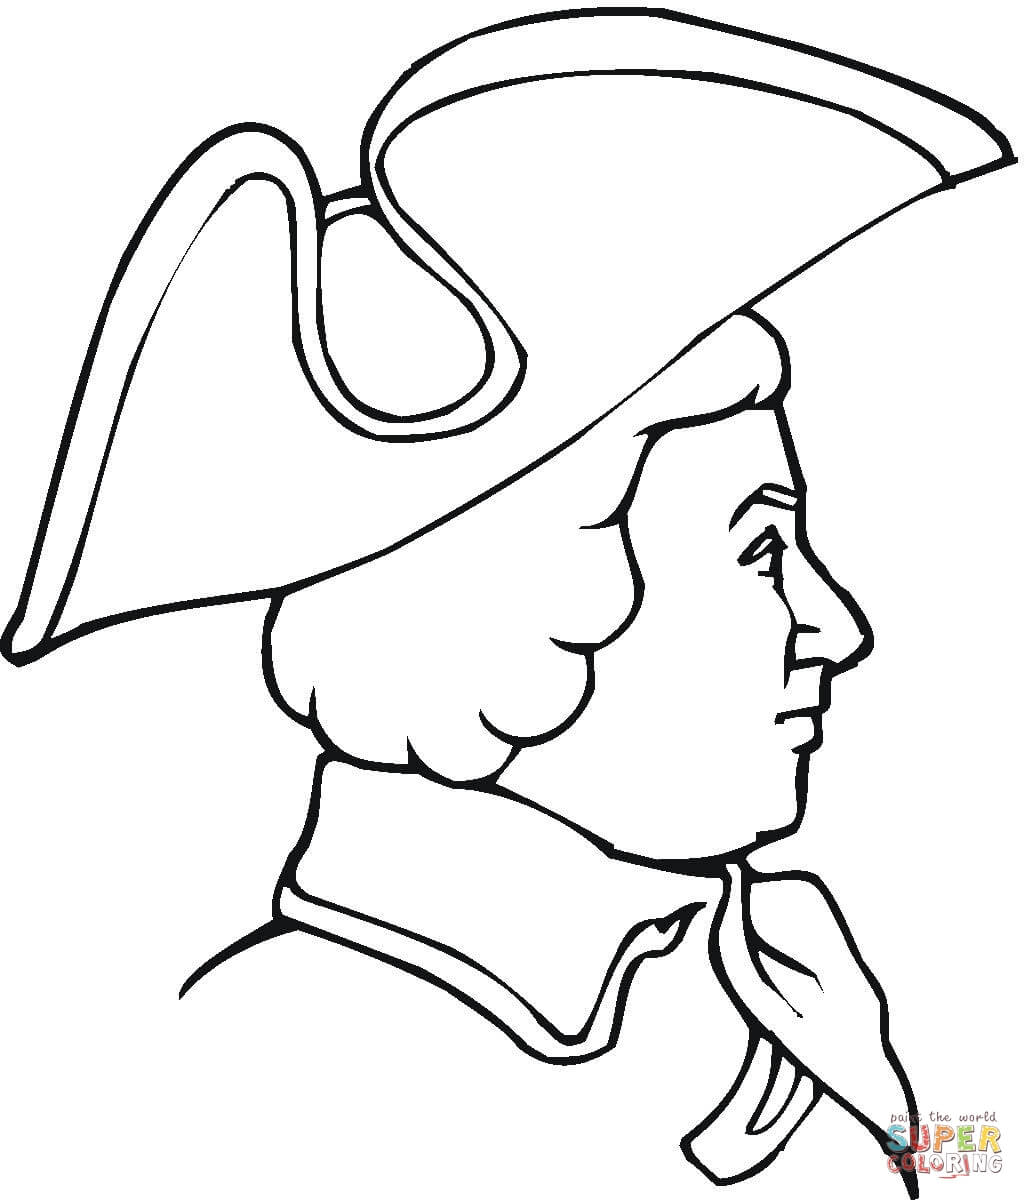 1025x1200 Revolutionary War Soldier Coloring Page Free Printable Coloring